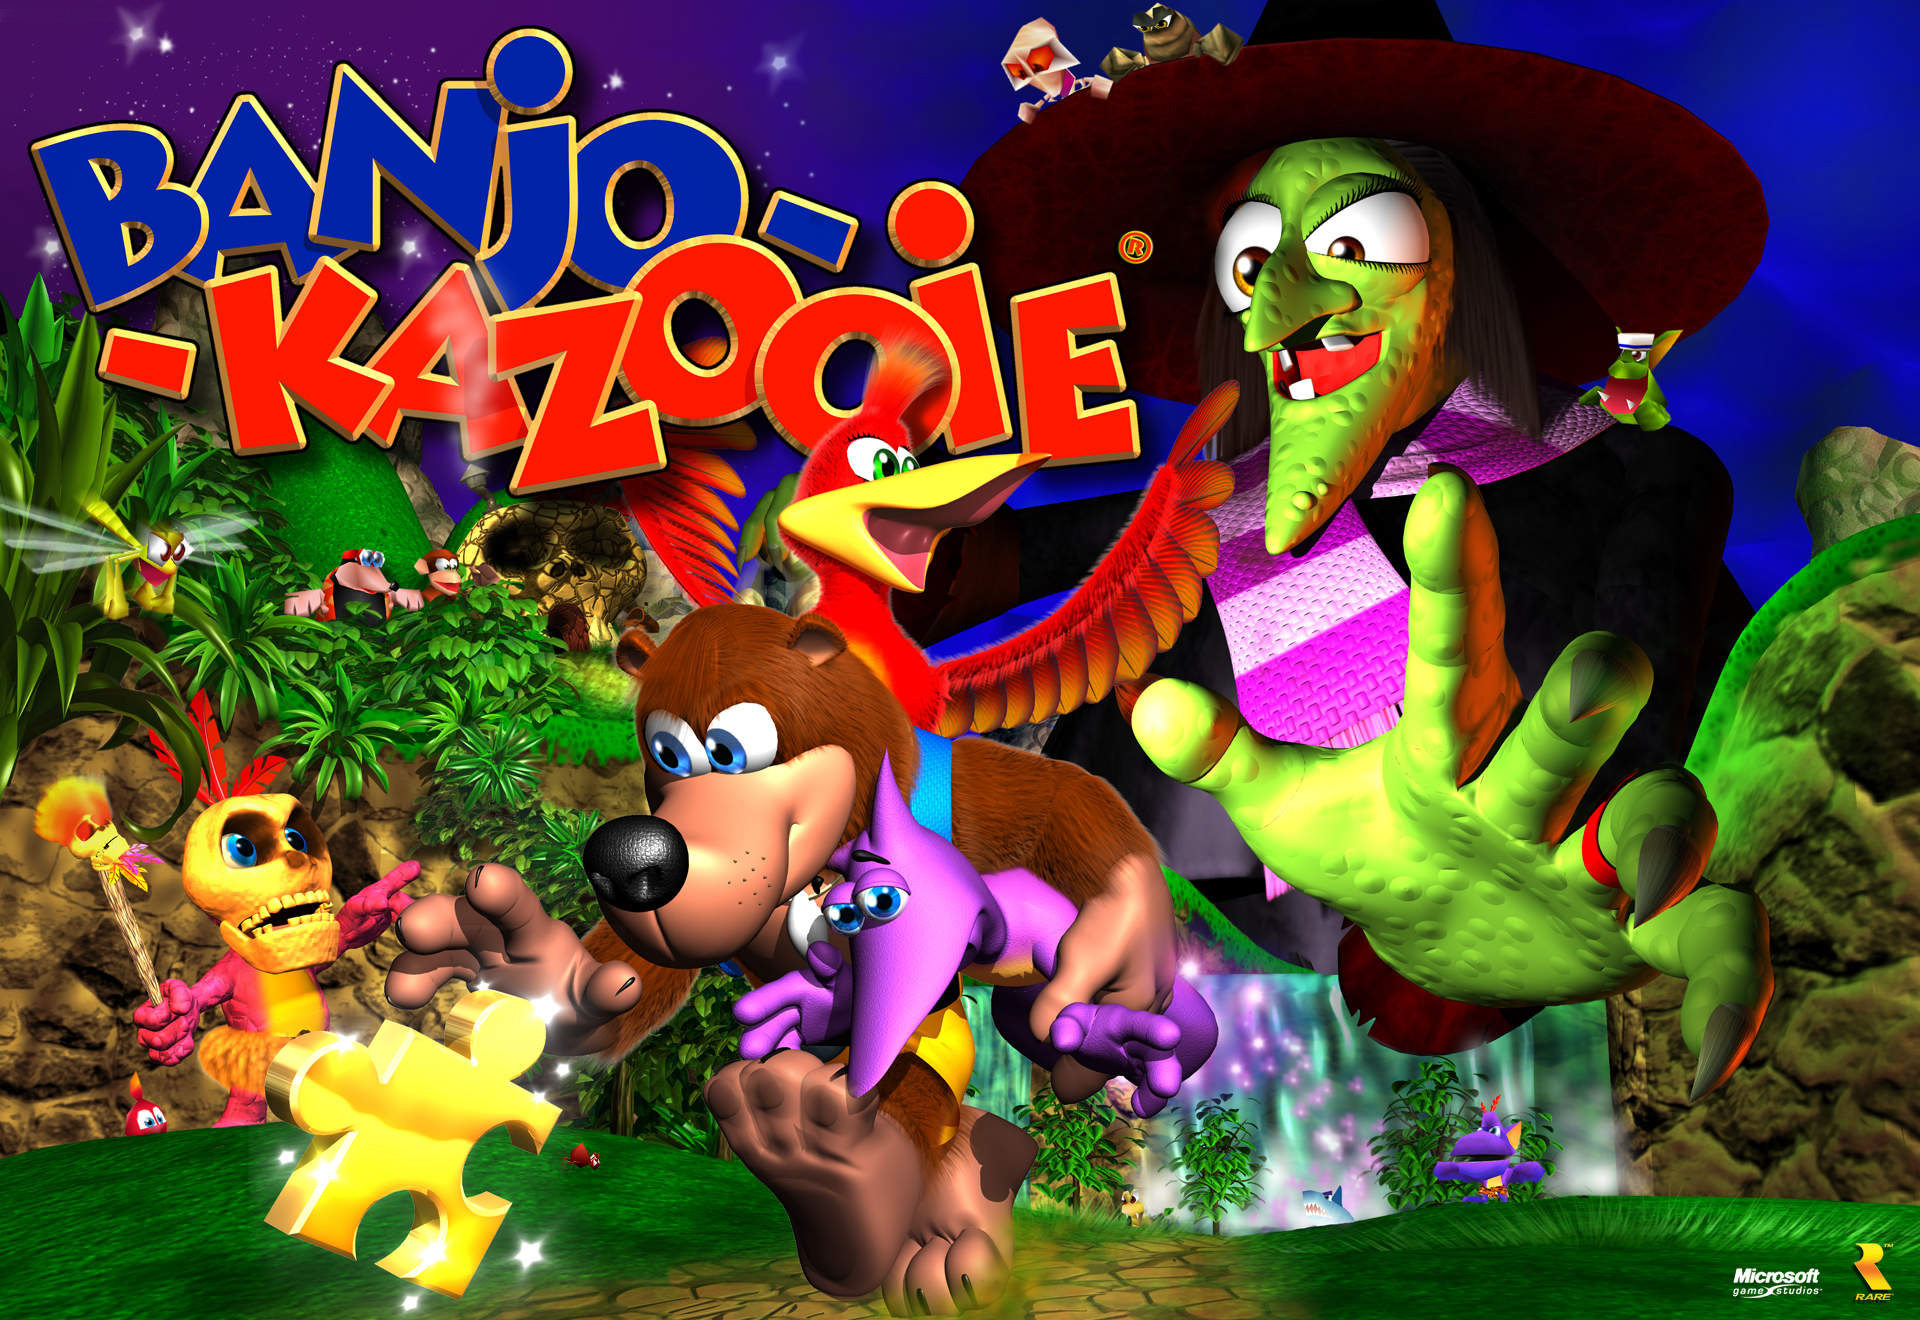 "Former Rare Devs Working On A Spiritual Successor to ""Banjo-Kazooie"" - Eekum Bokum!"